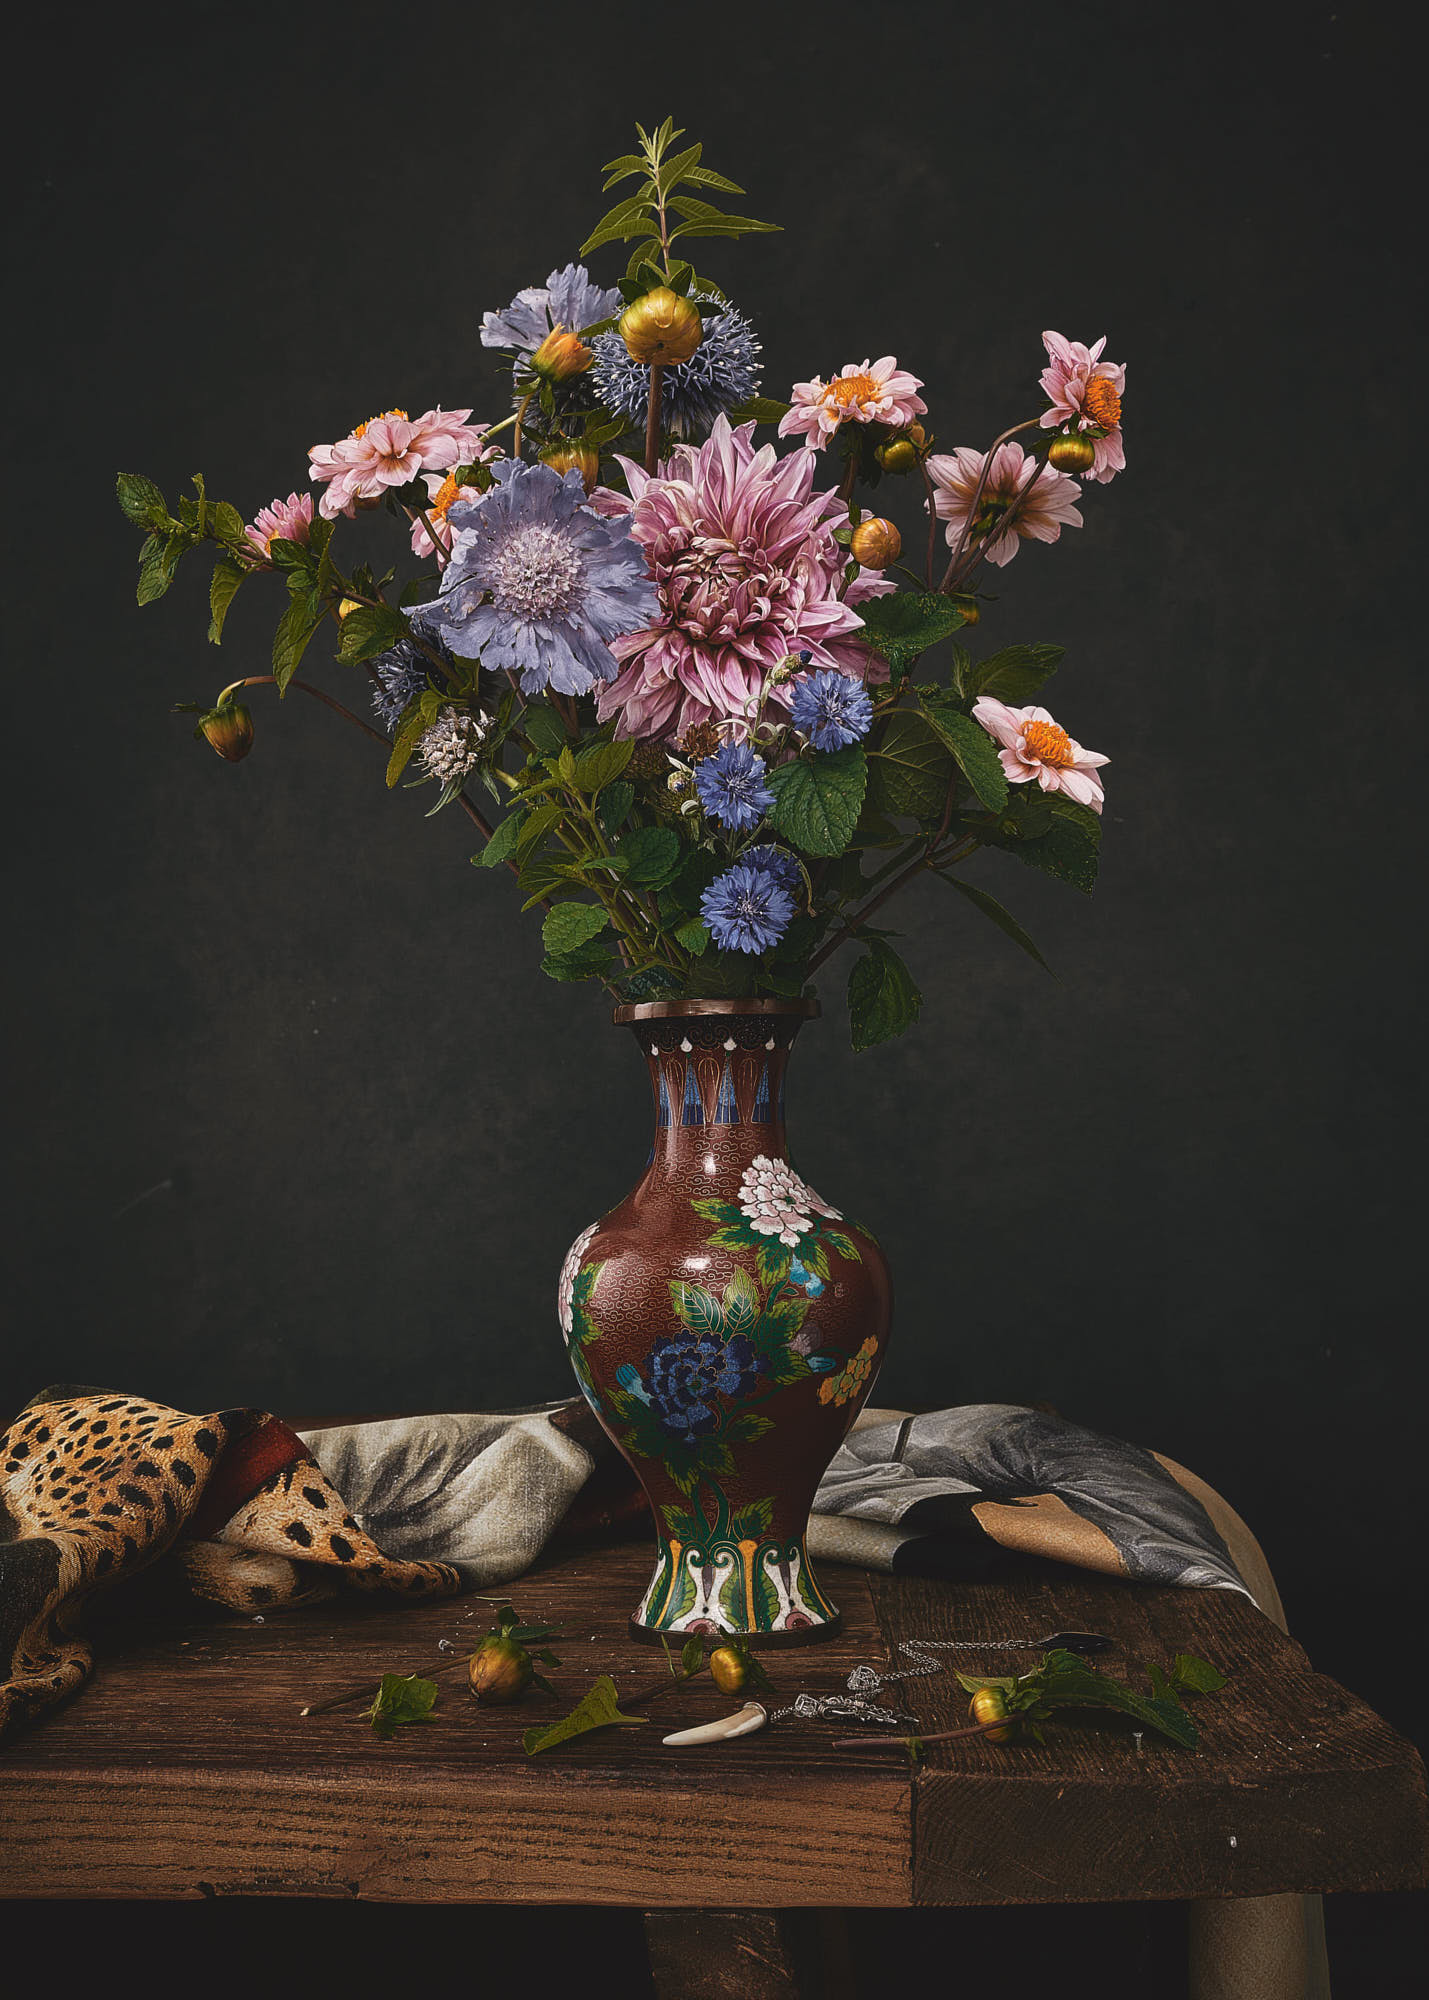 a still life fine art photography of flowers in a vase, in the style of a dutch masters painting by yorkshire based photographer matthew lloyd